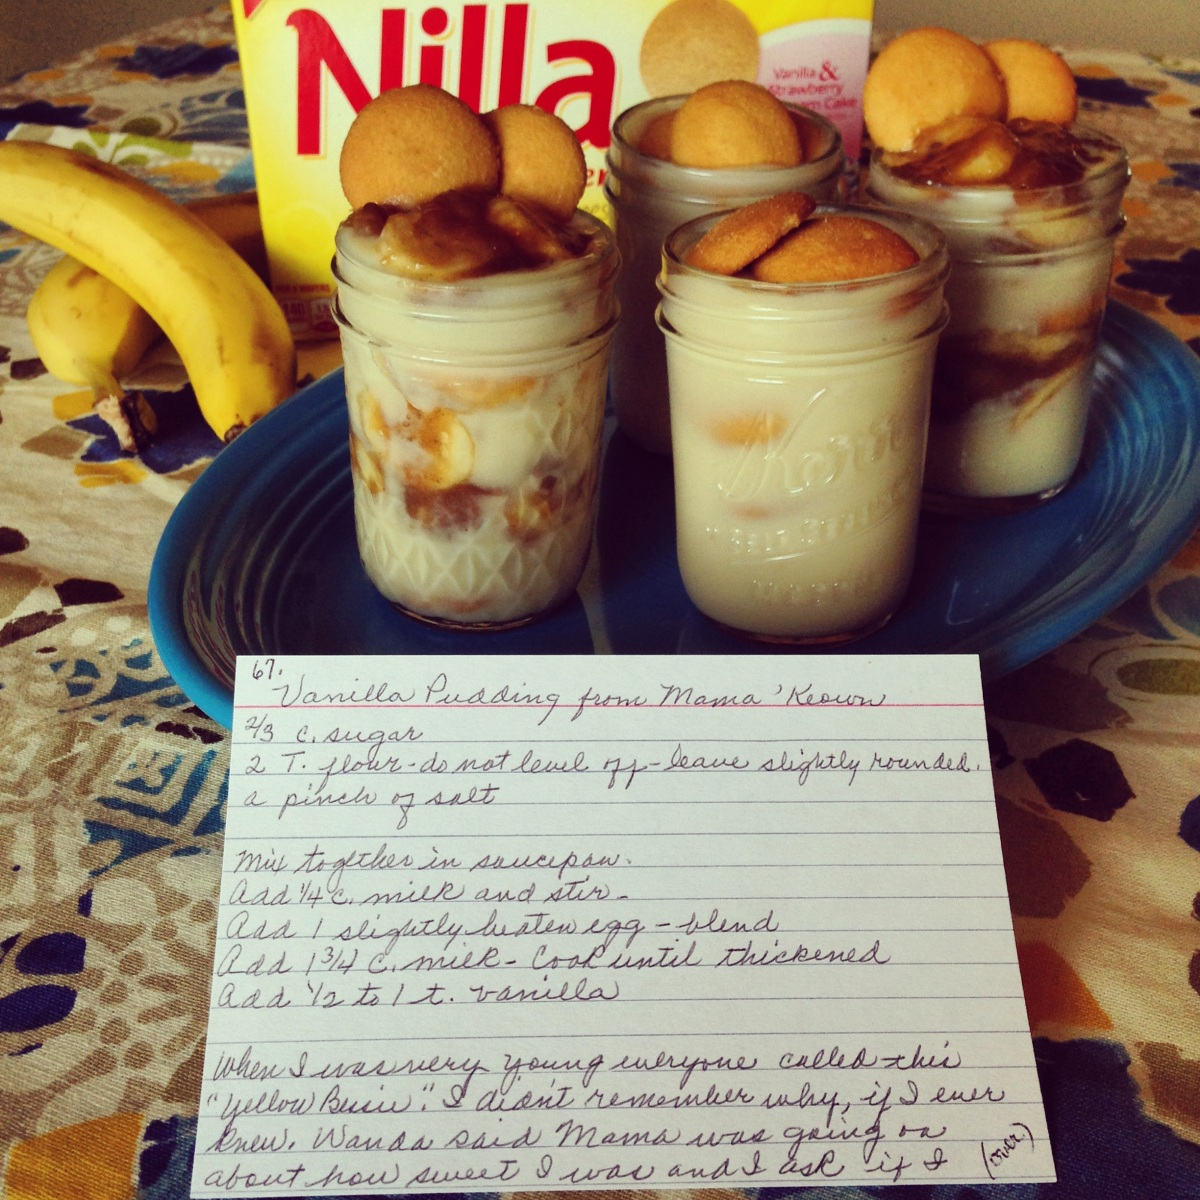 Mama' Keown's Vanilla Pudding: Transformed into Bananas Foster Banana Pudding